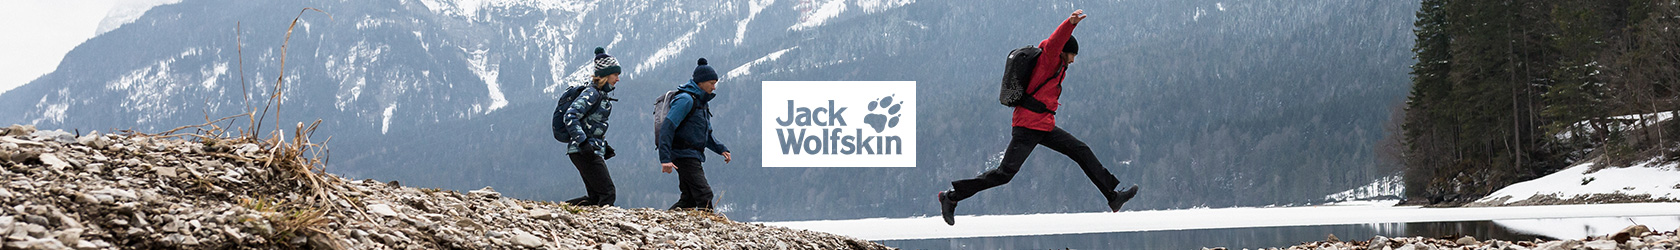 3 People in Jack Wolfskin gear are walking somewhere in the winter outdoors.